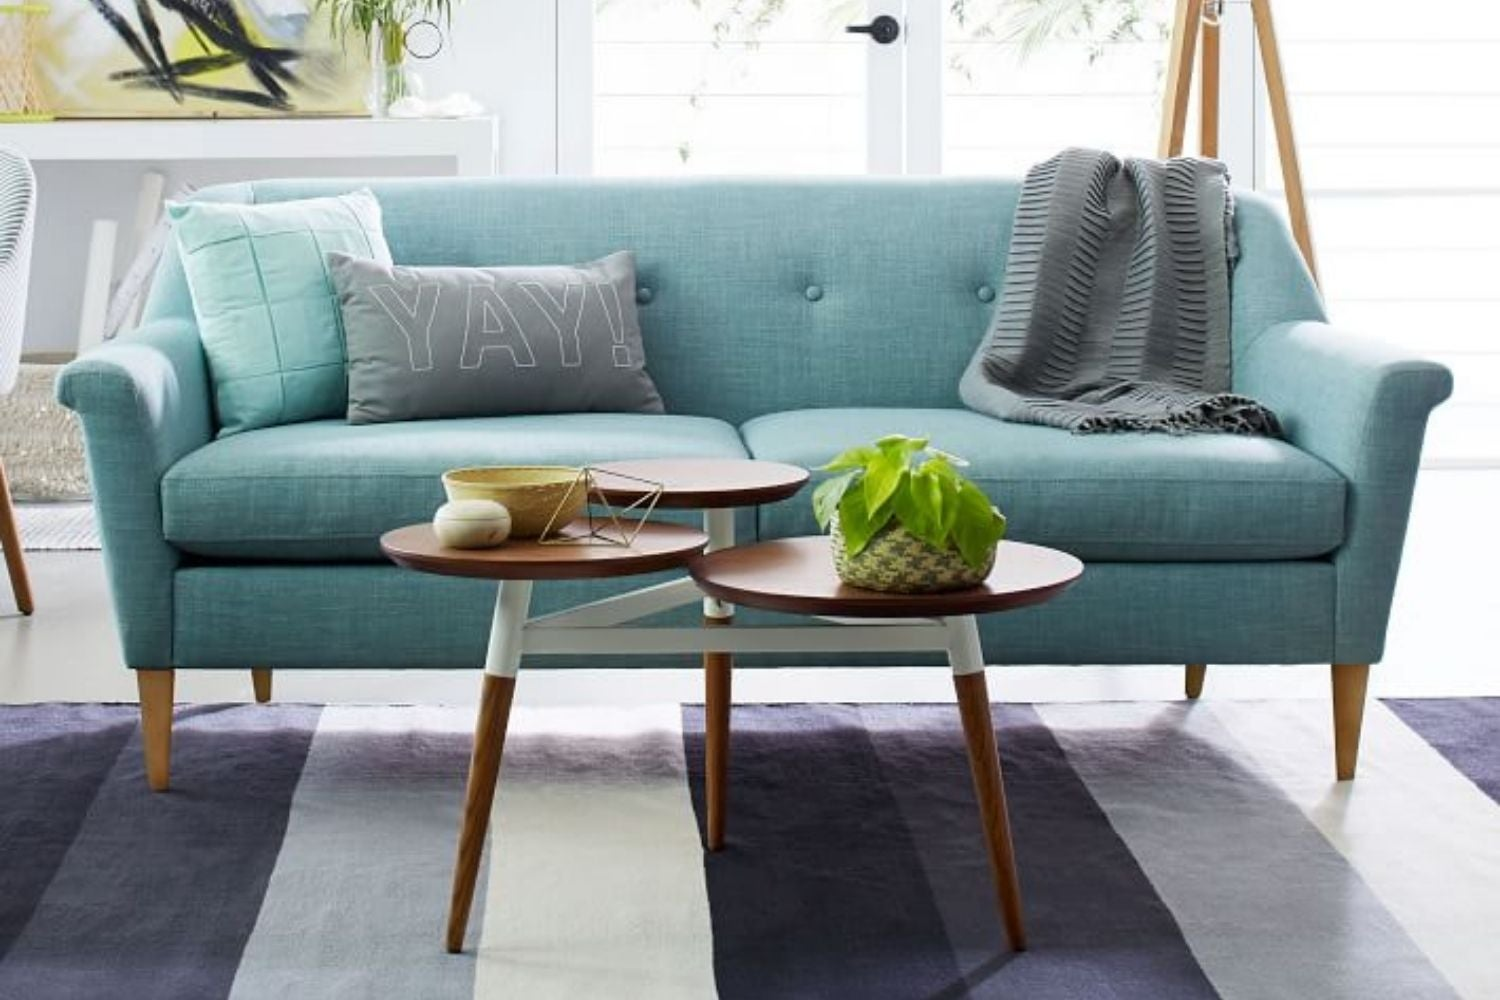 best loveseat for small spaces in 2021